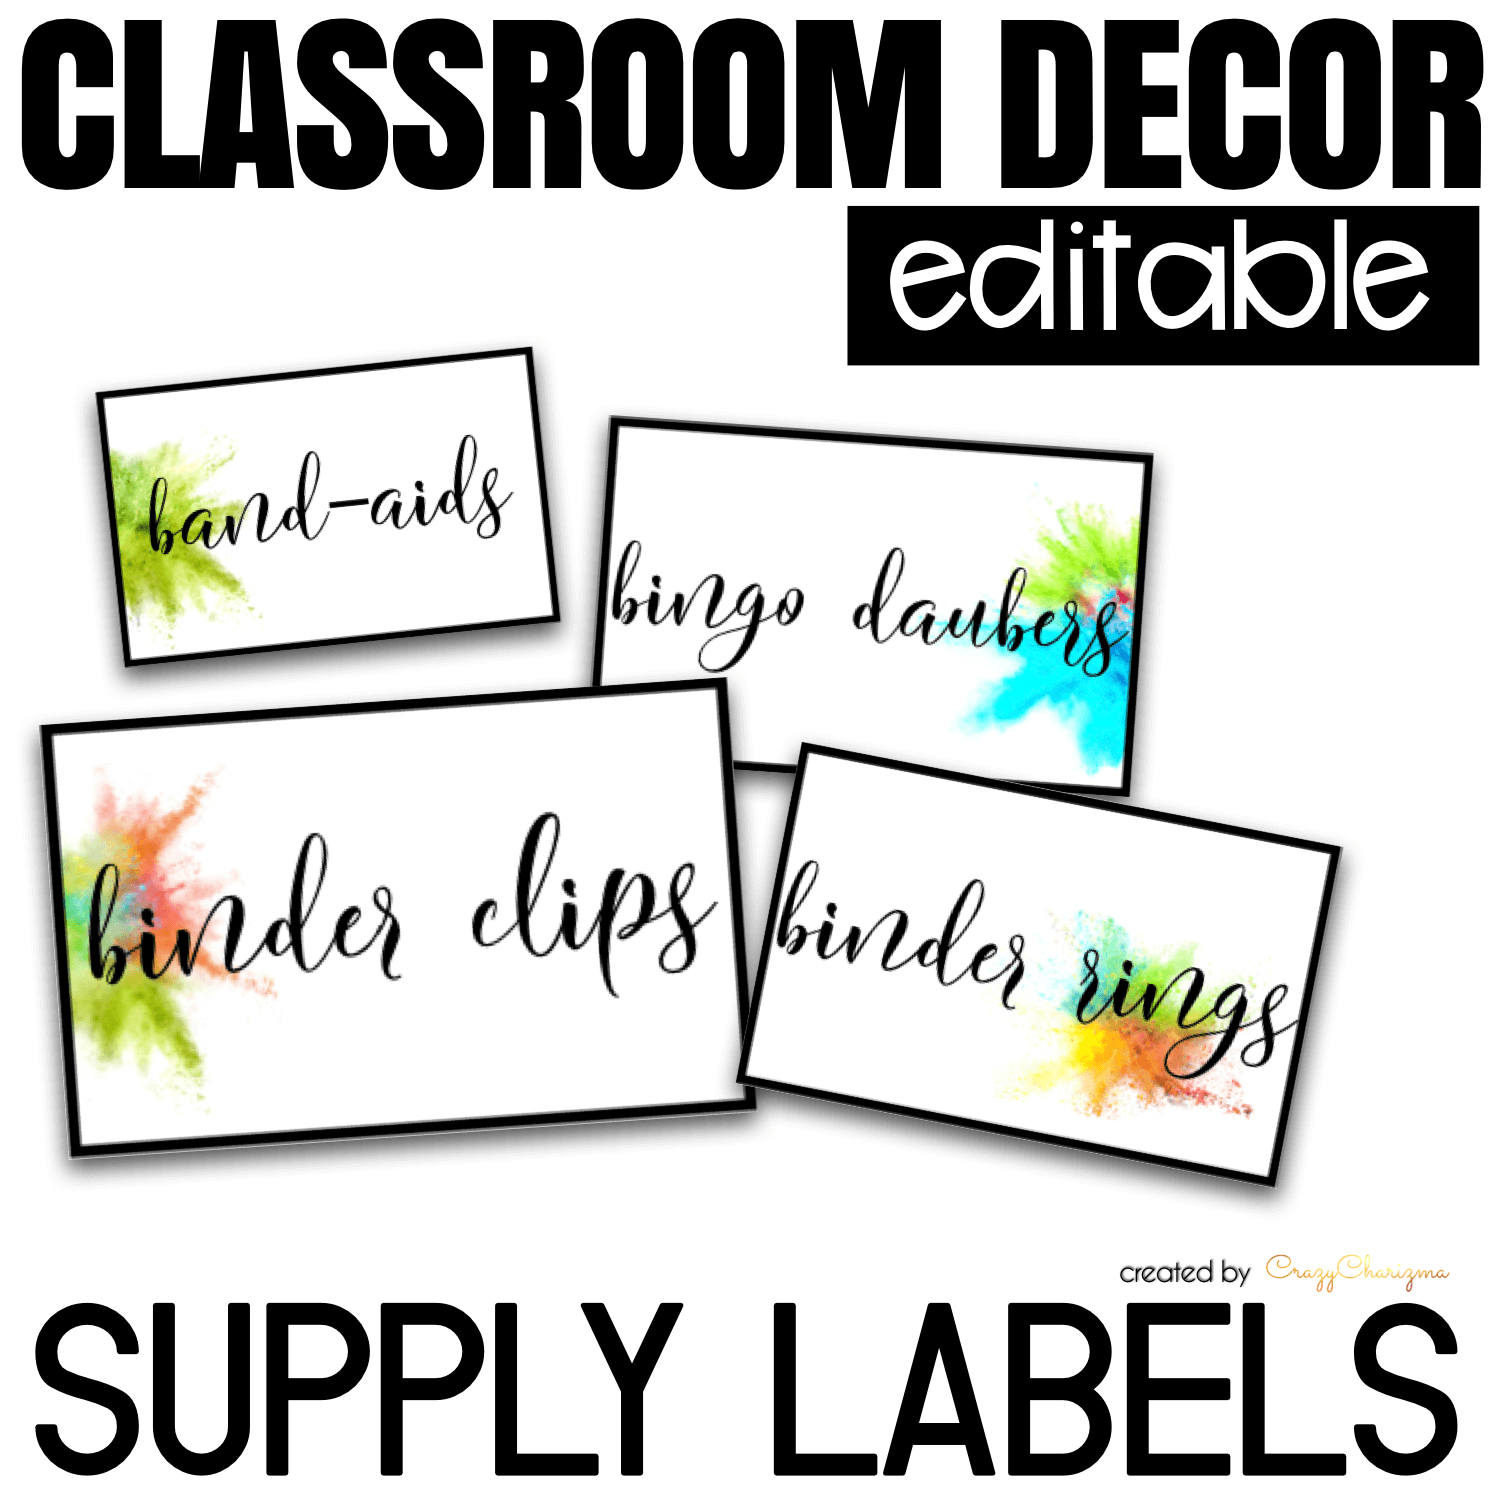 Looking for bright and clear EDITABLE supply labels? Spice your classroom with this visually appealing SPLASH classroom decor!